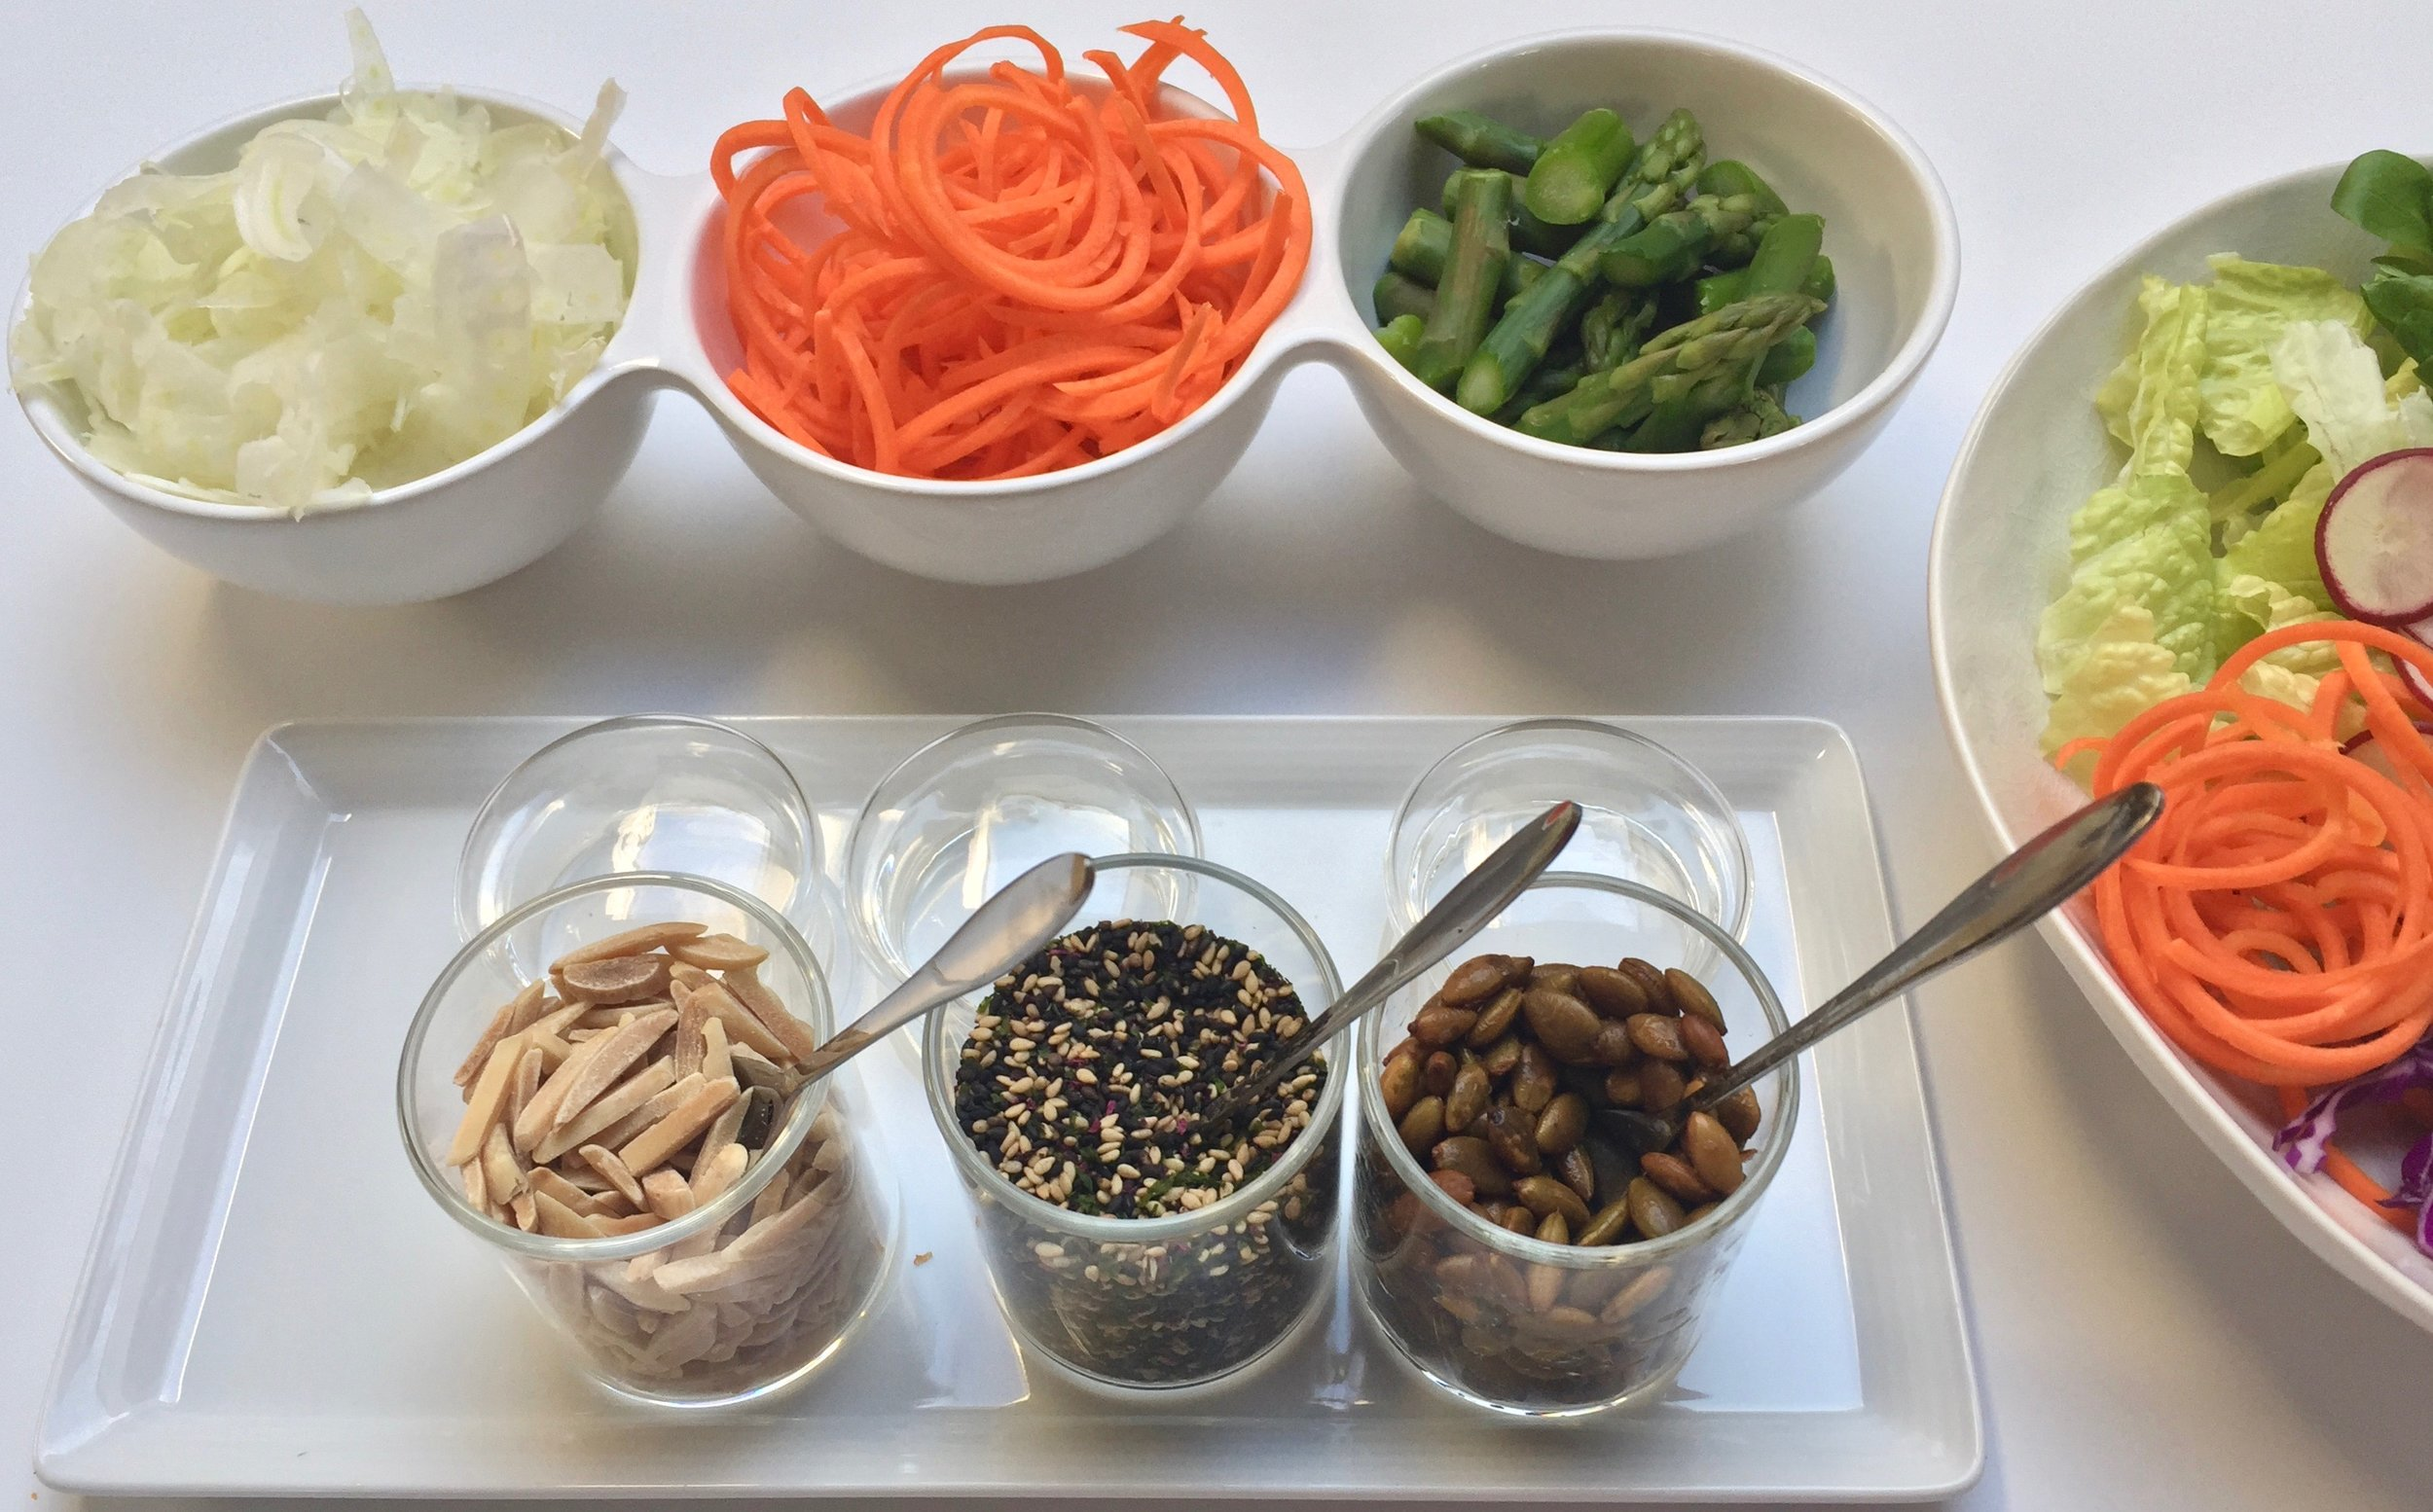 It's a Buddha Bowl Bar! Some components to add to your bowl - raw shaved fennel, pickled carrot spaghetti and blanched asparagus. To add some crunch we offered toasted sliced almonds, black & white sesame seeds with sea vegetables and toasted pumpkin seeds.